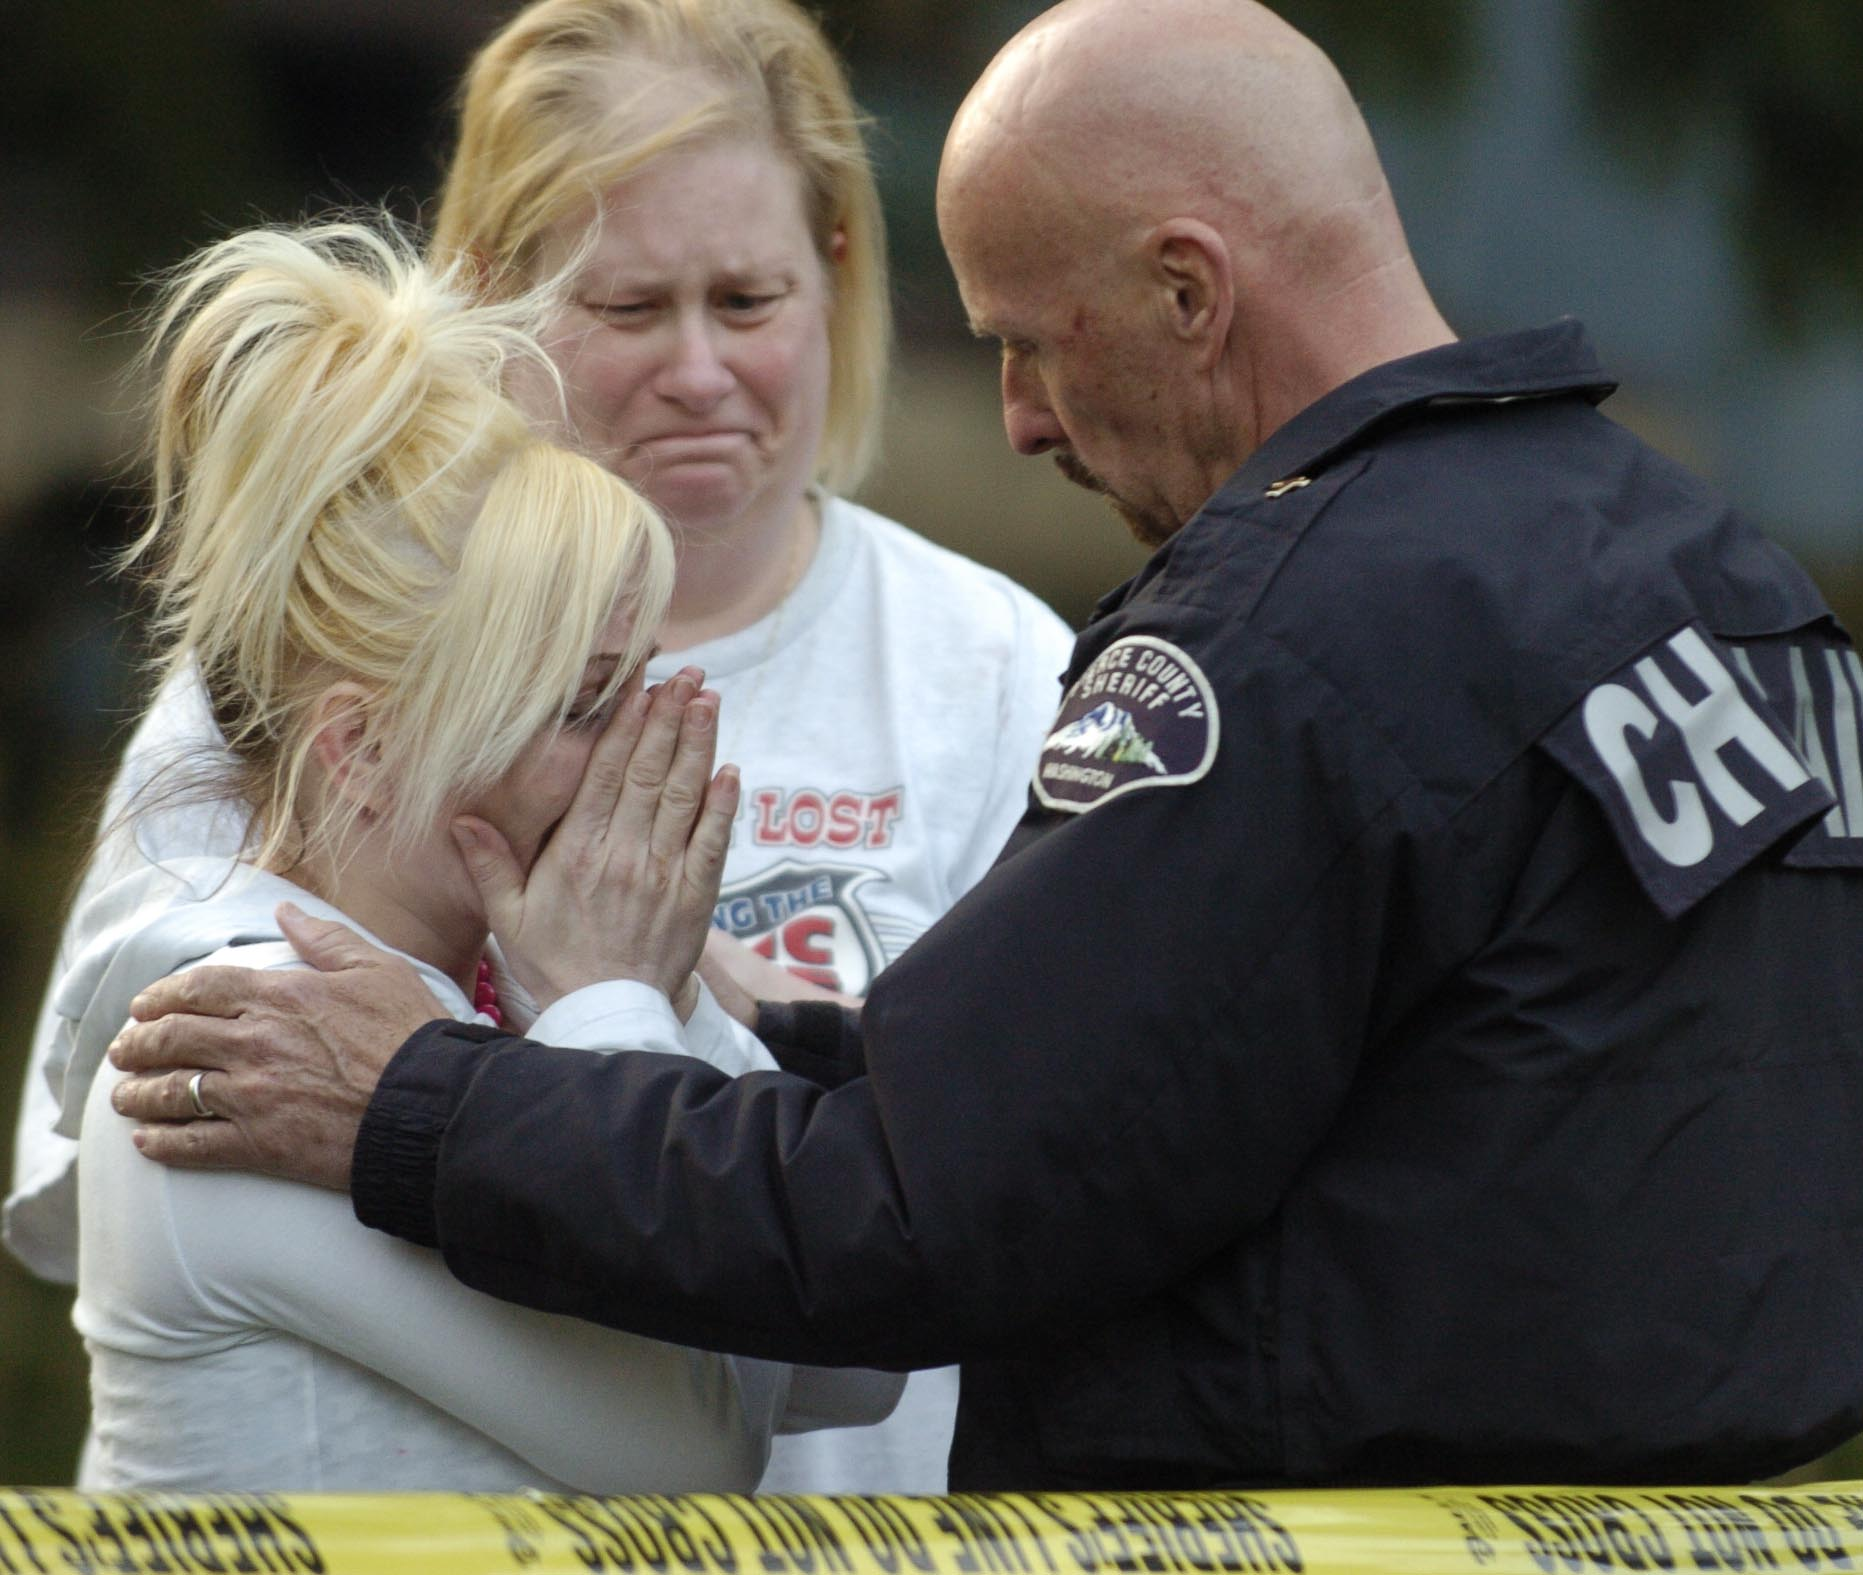 Five kids, dad found dead on West side | The Spokesman-Review